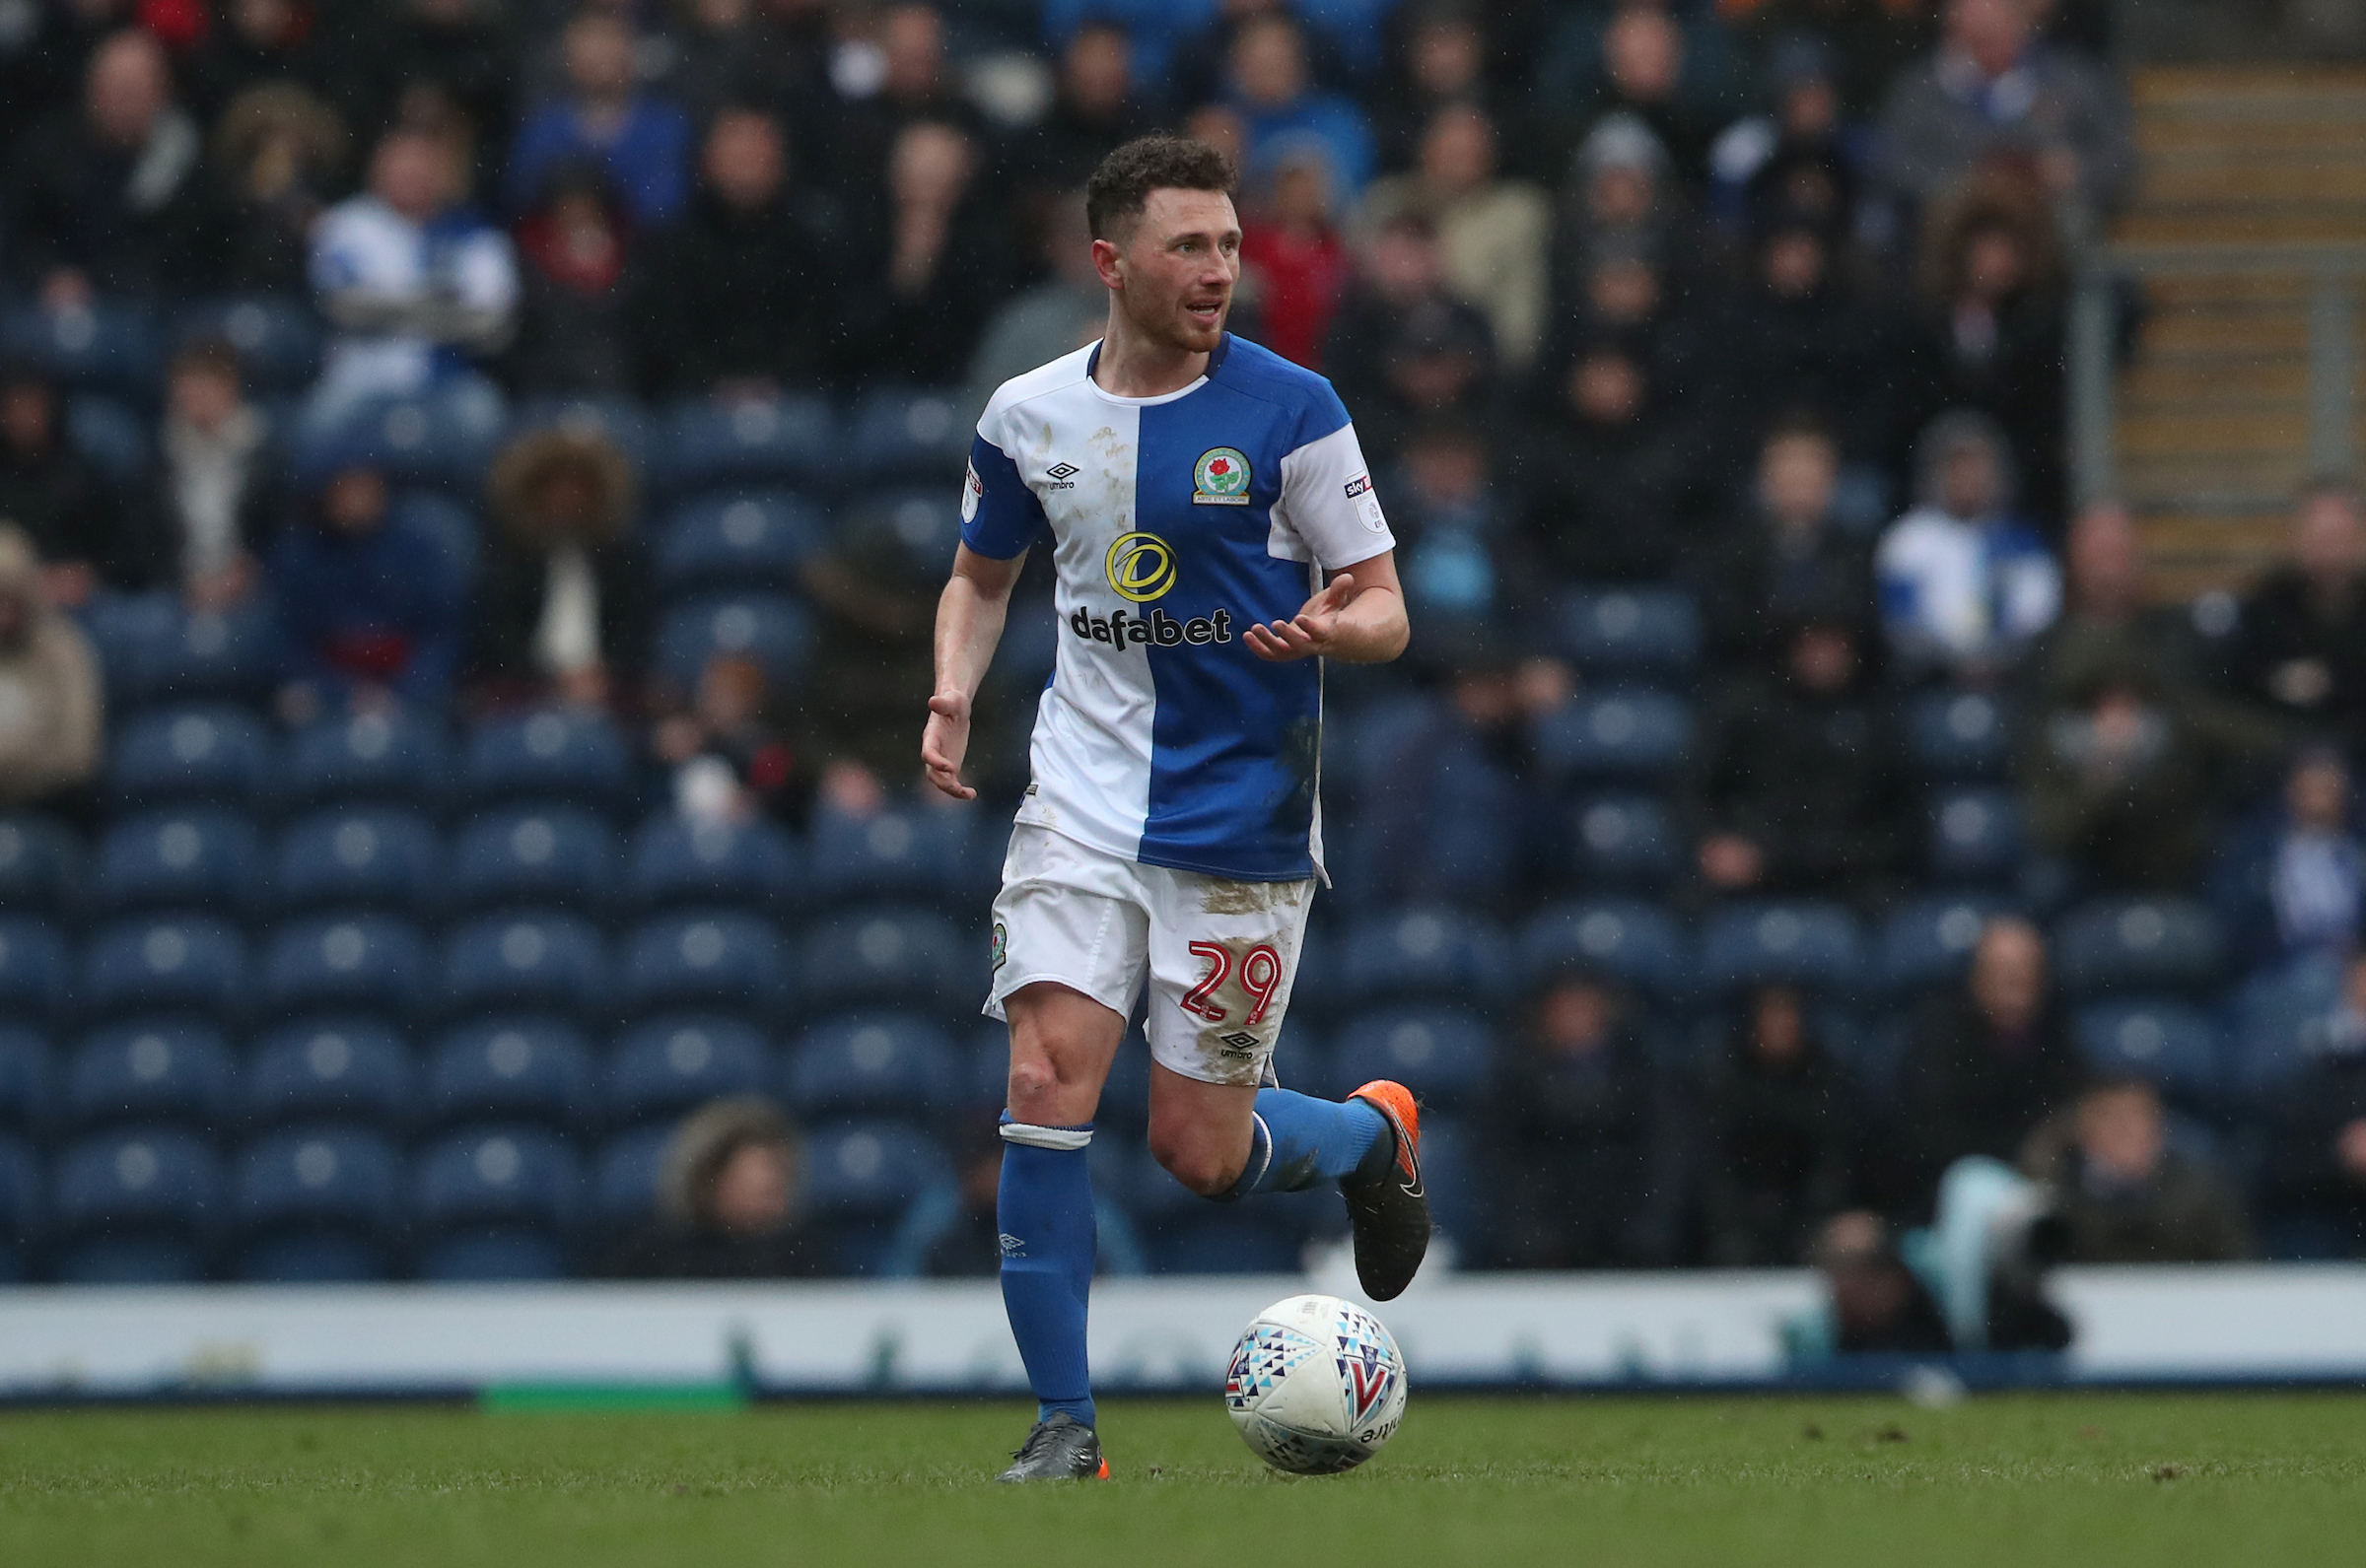 Corry Evans was an early substitute for Rovers in their win over Blackpool at the weekend